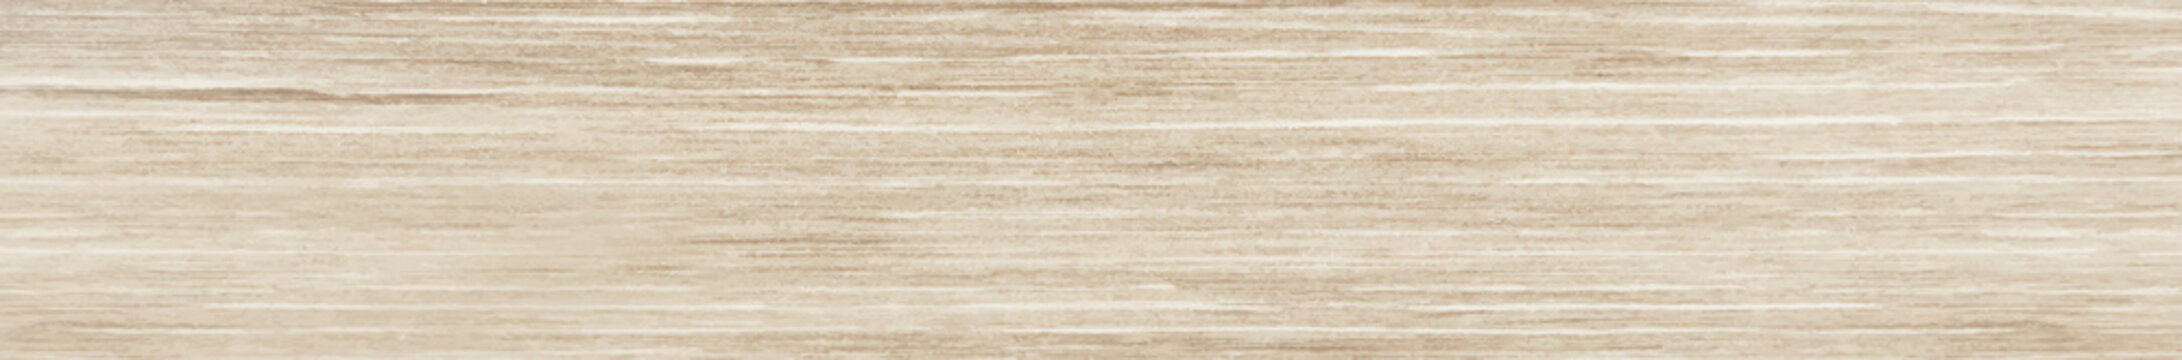 Panoramic texture of light wood with knots - Vector